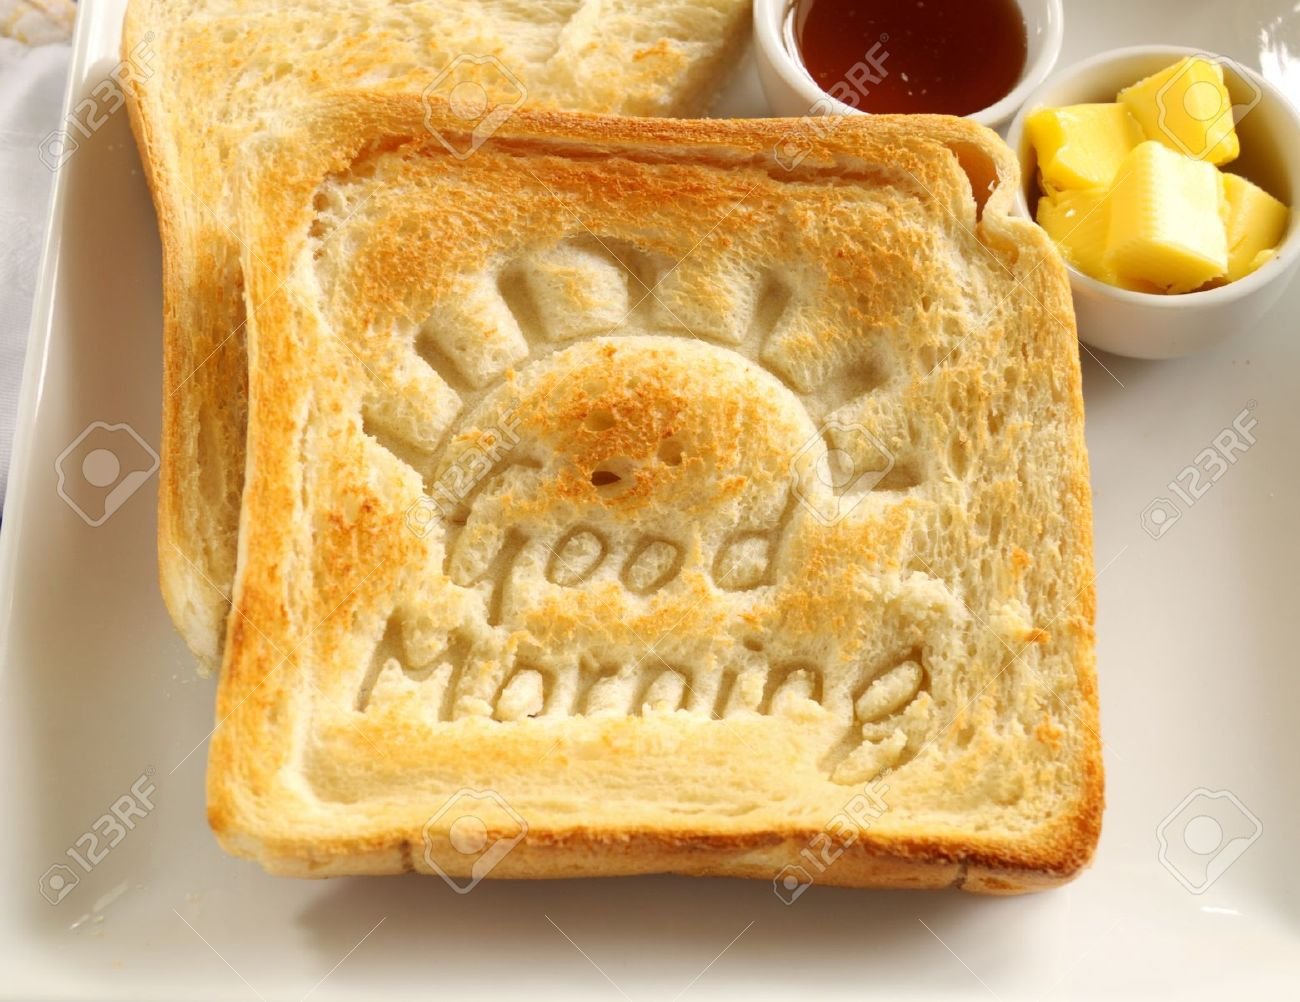 Slice of toast with Good Morning carved into it with butter and honey. - 12510093